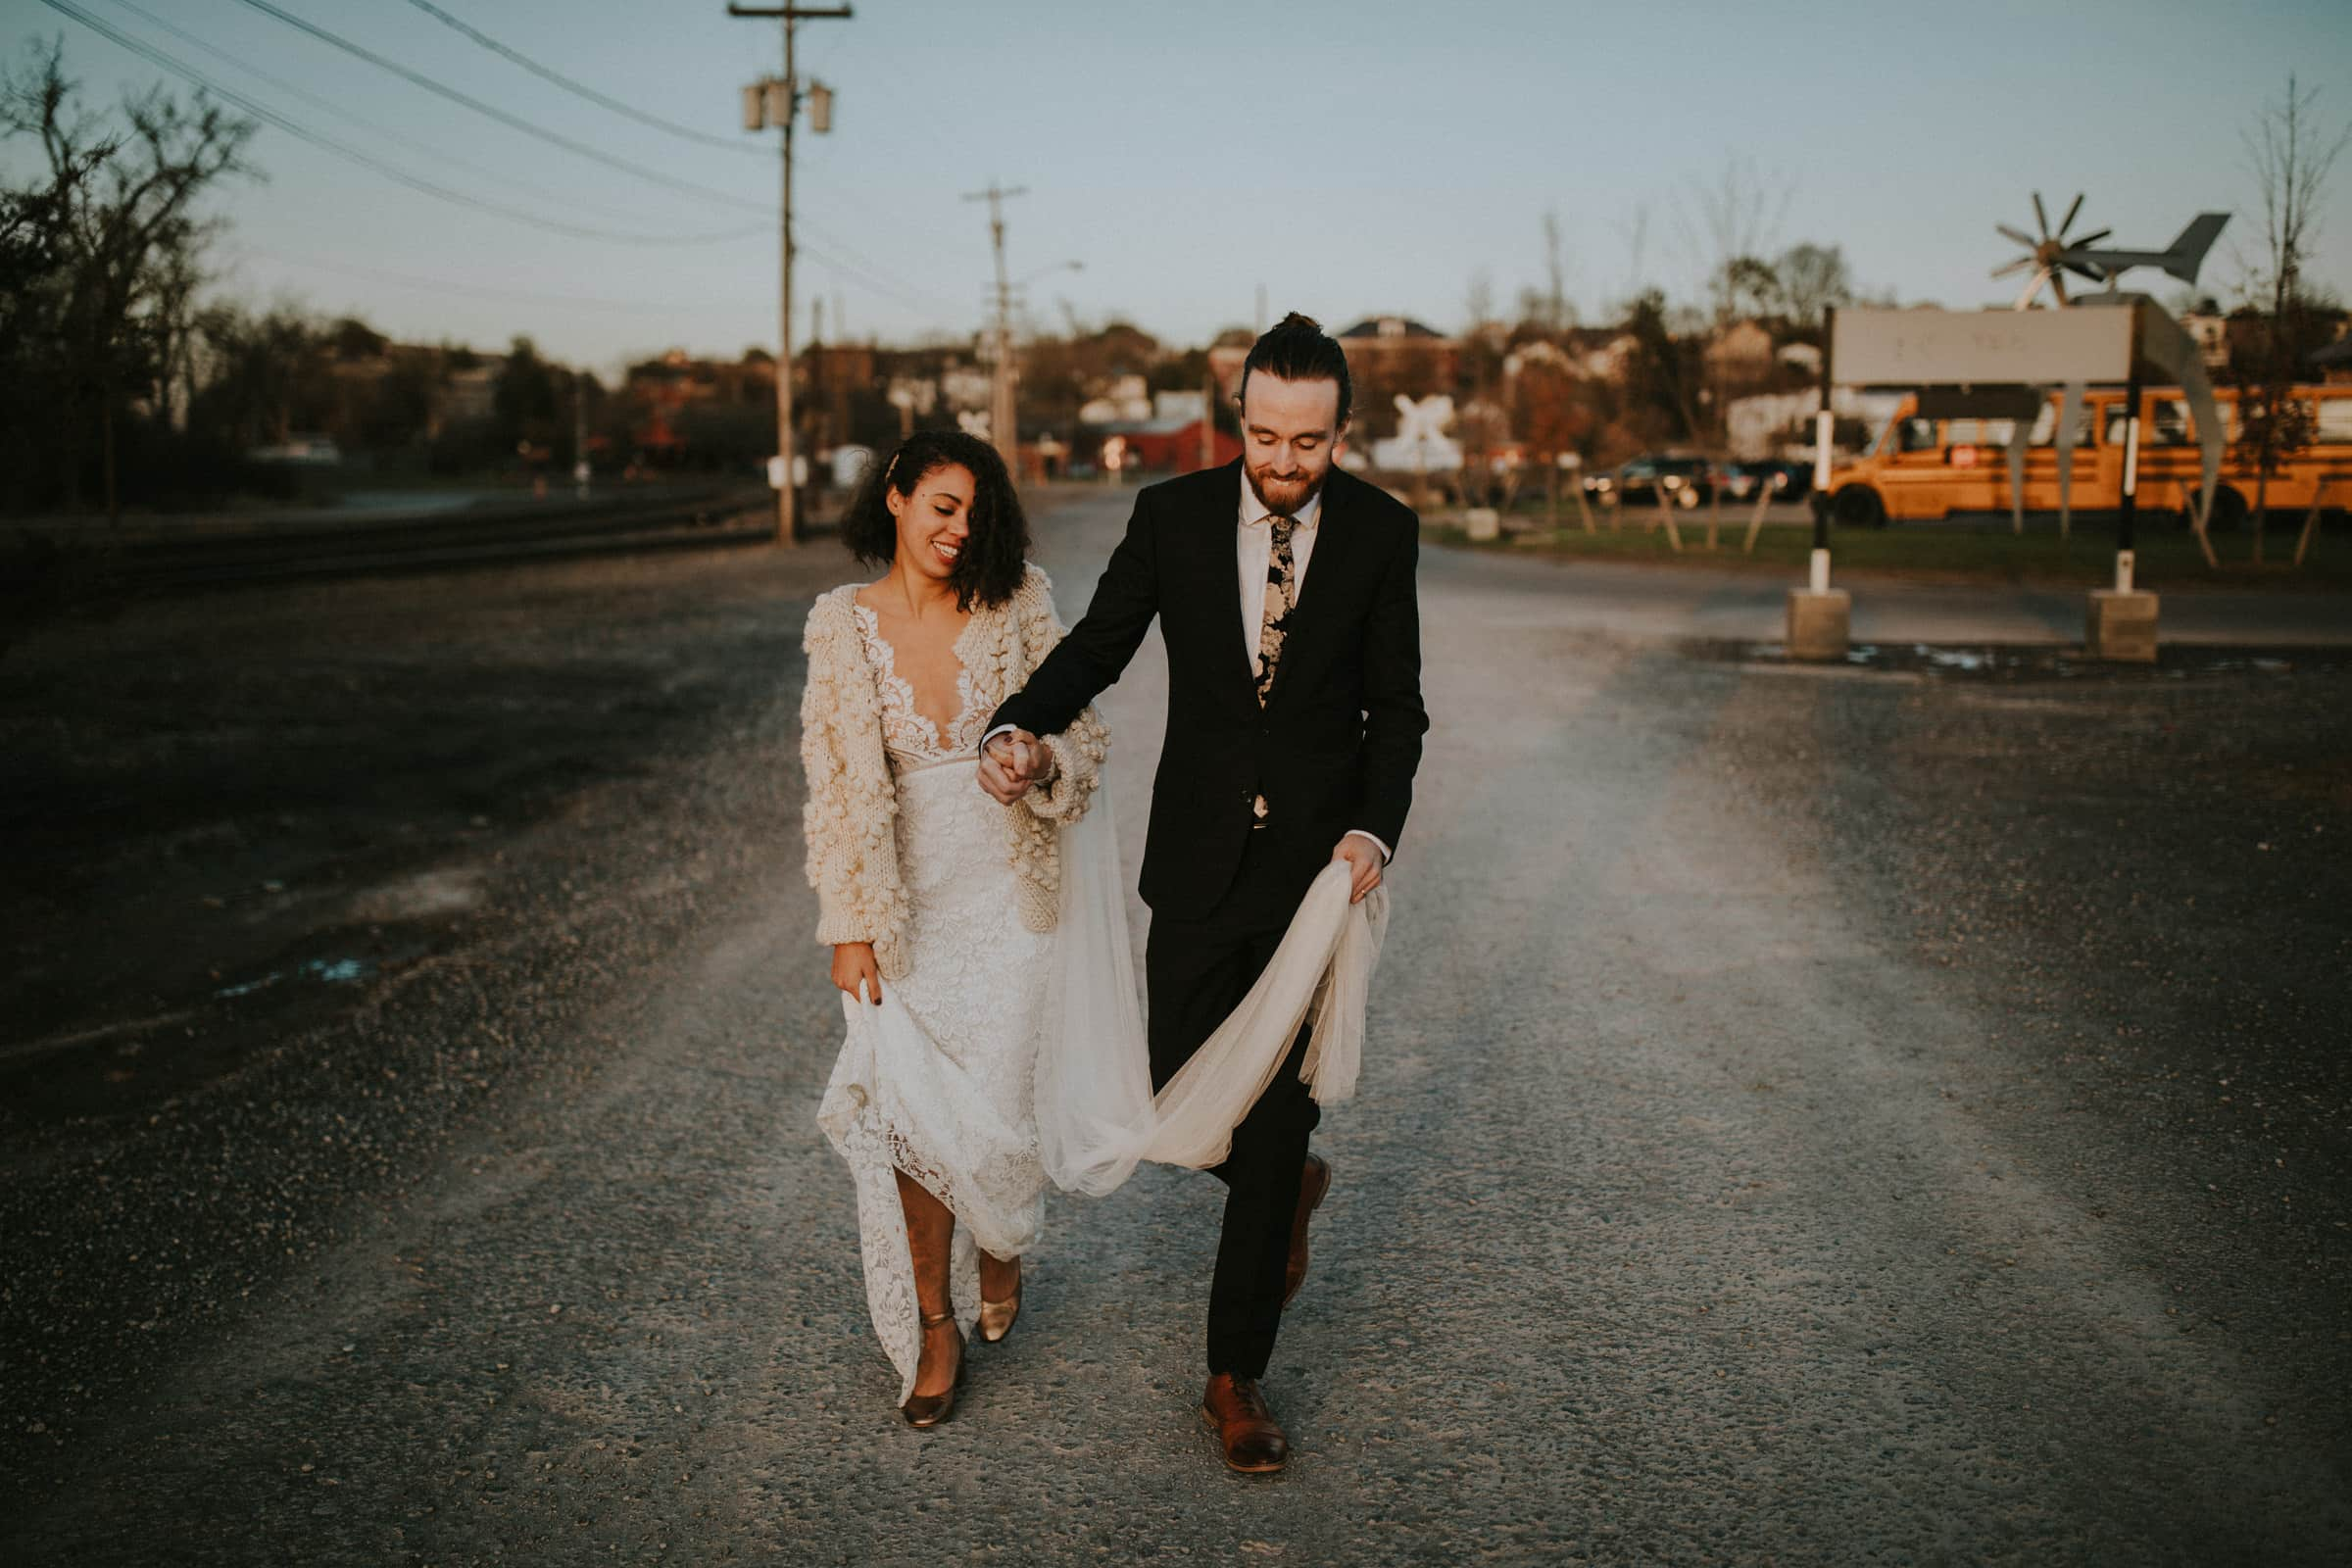 the wedding couple is walking down a road next to tram tracks and industrial buildings.